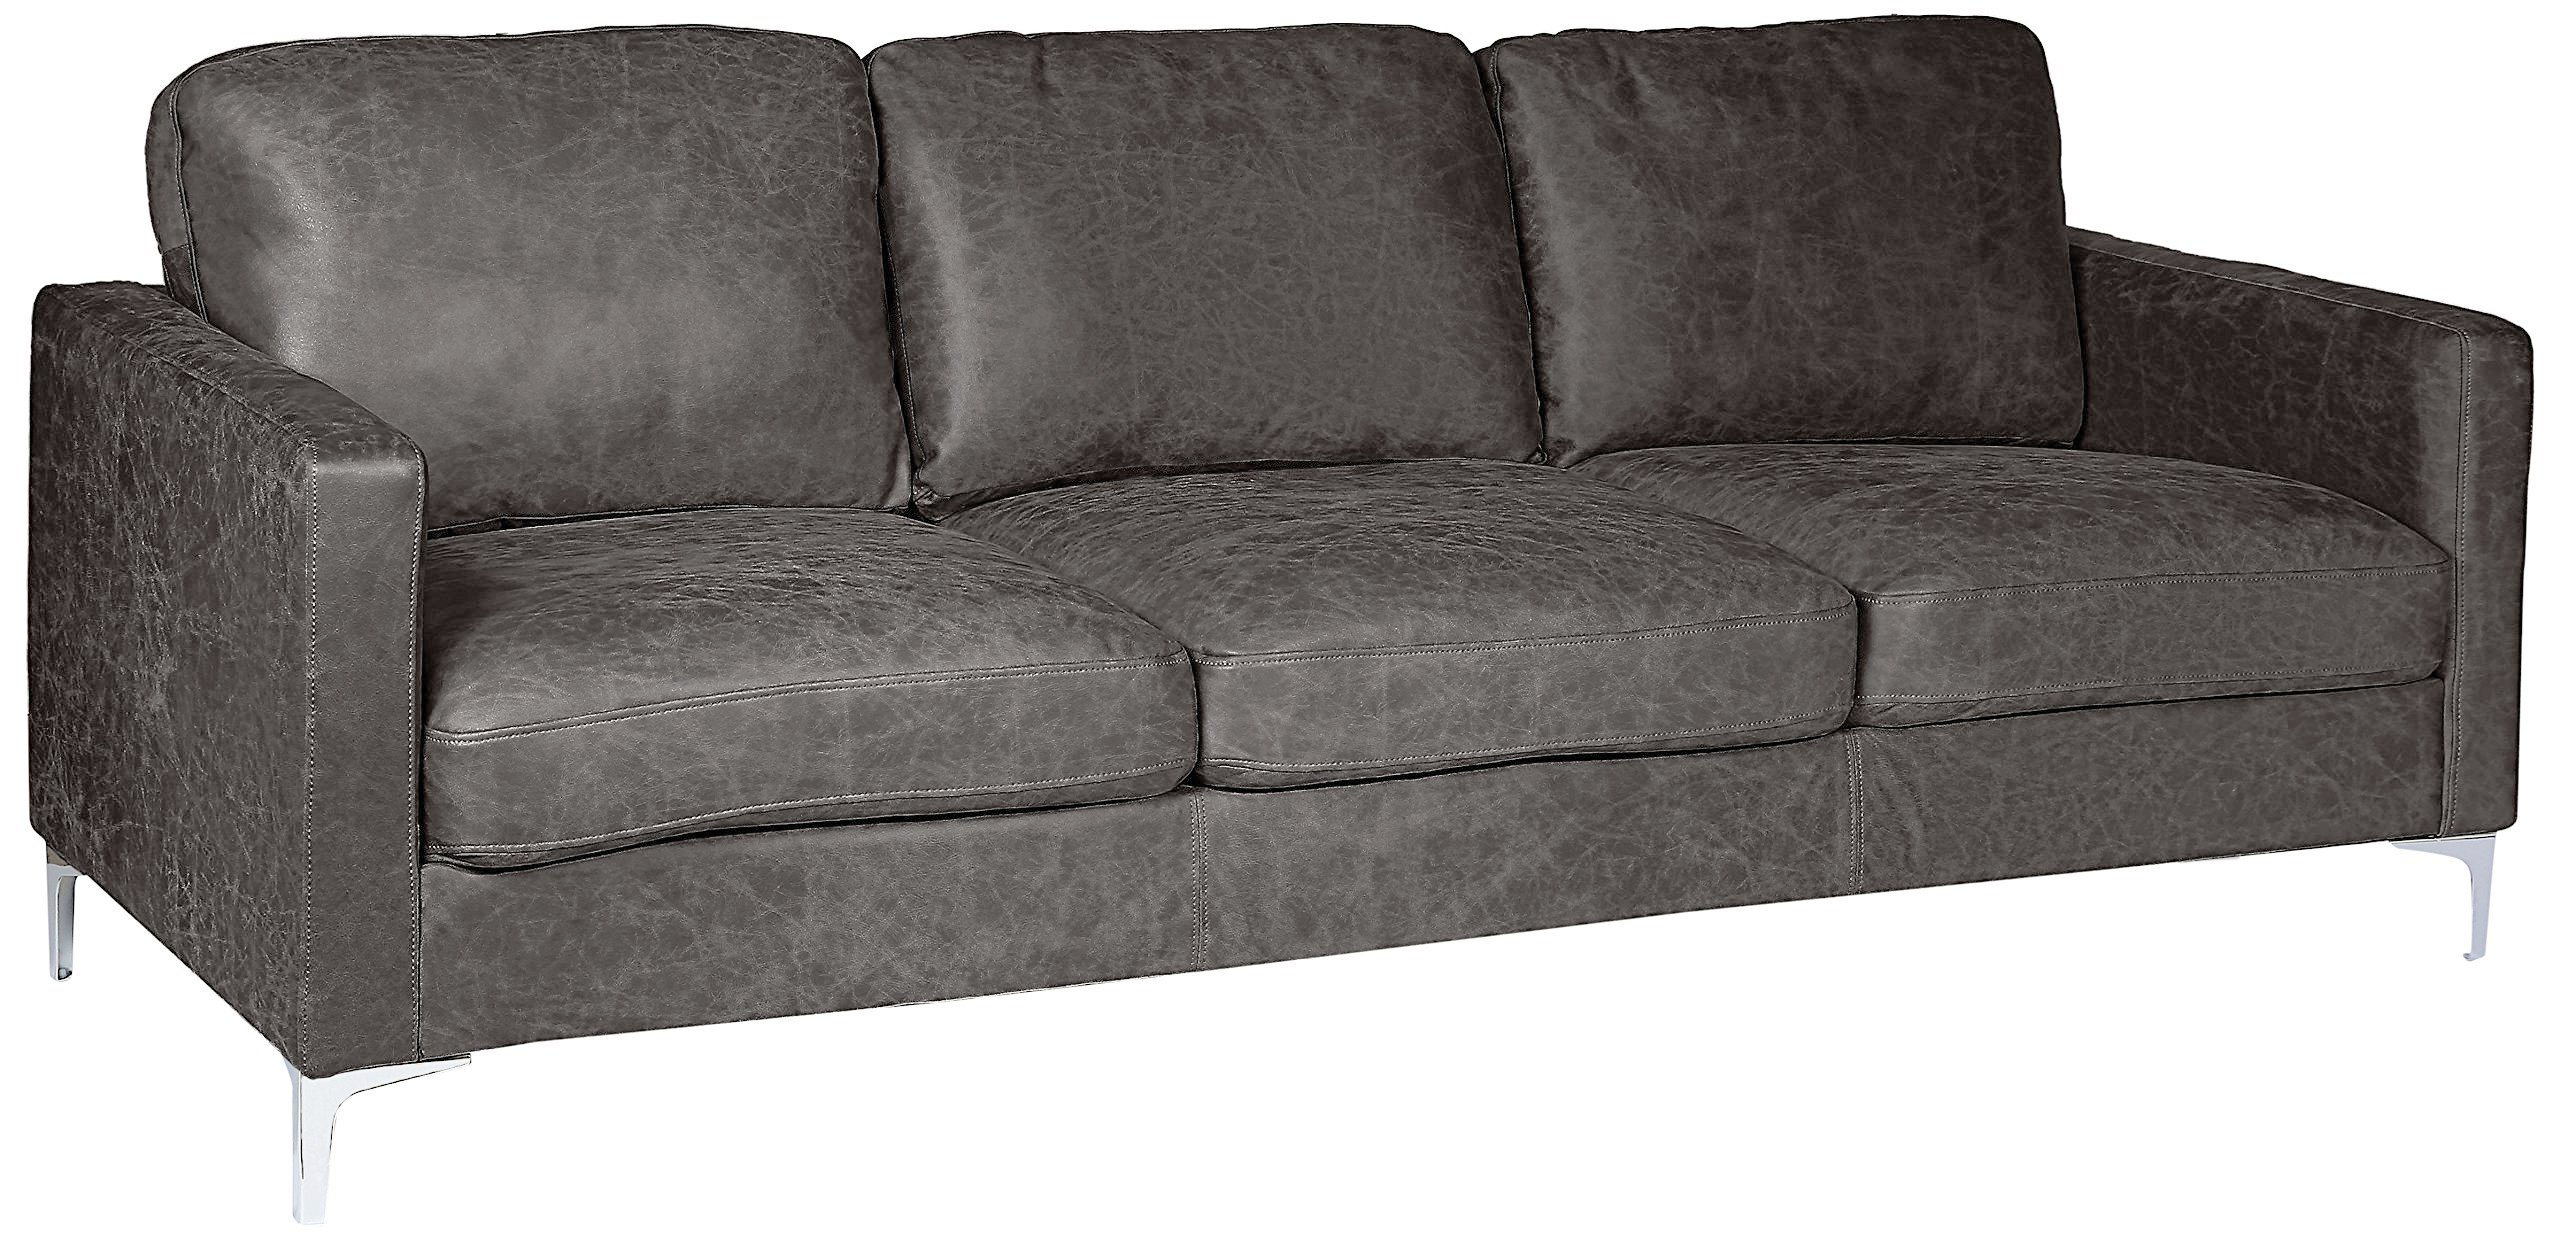 Homelegance Breaux Modern Track Arm Sofa with Chrome Legs Accents, Gray by Homelegance